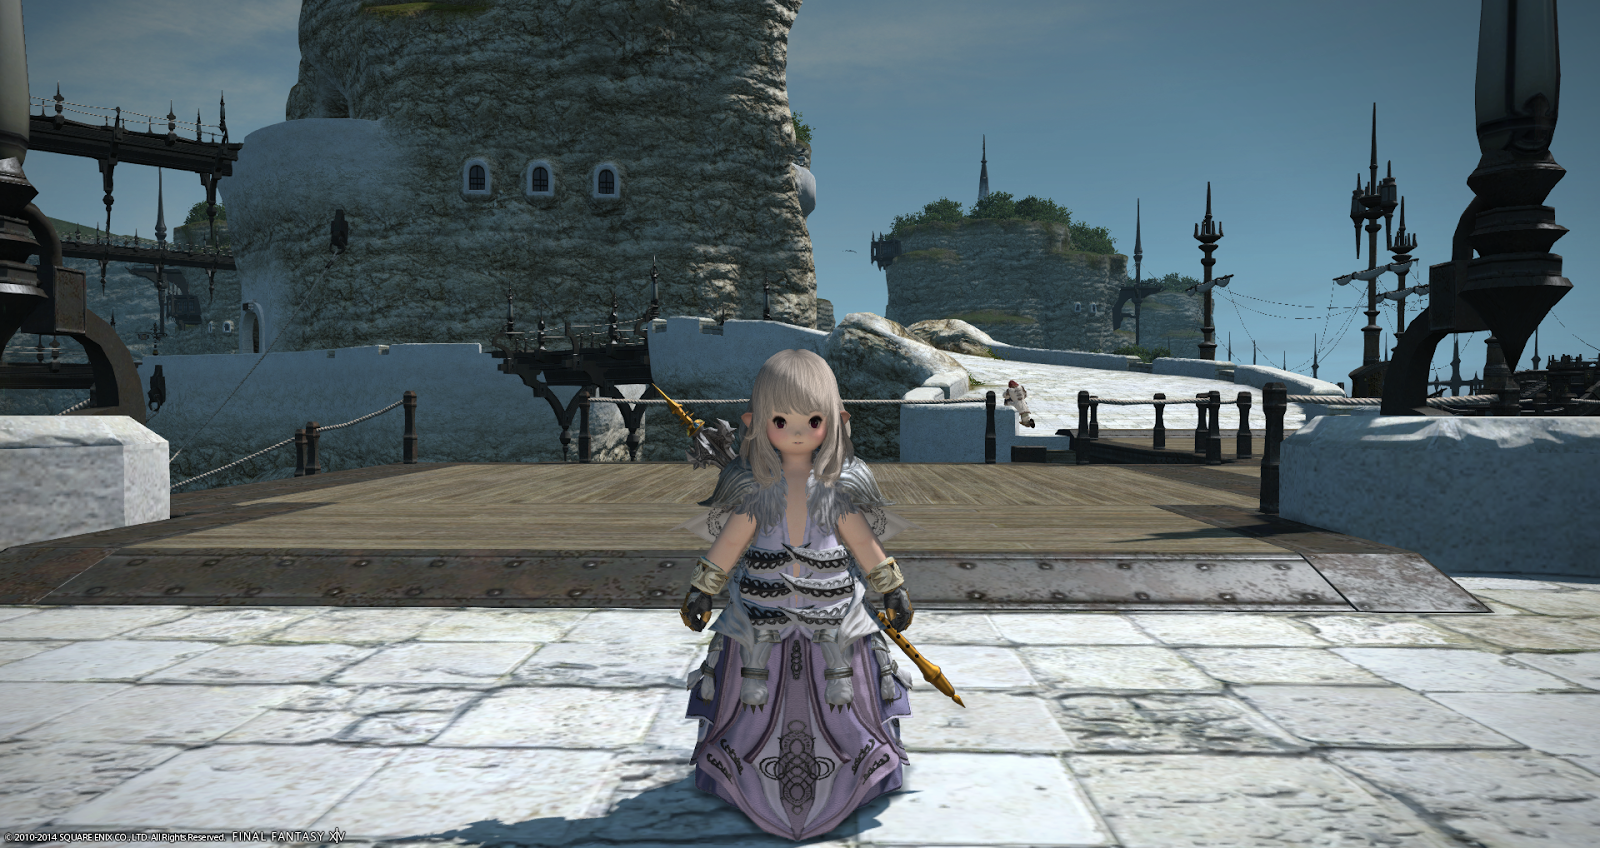 Scylla's Robe from Syrcus Tower. Damn does this make me look fat or ...